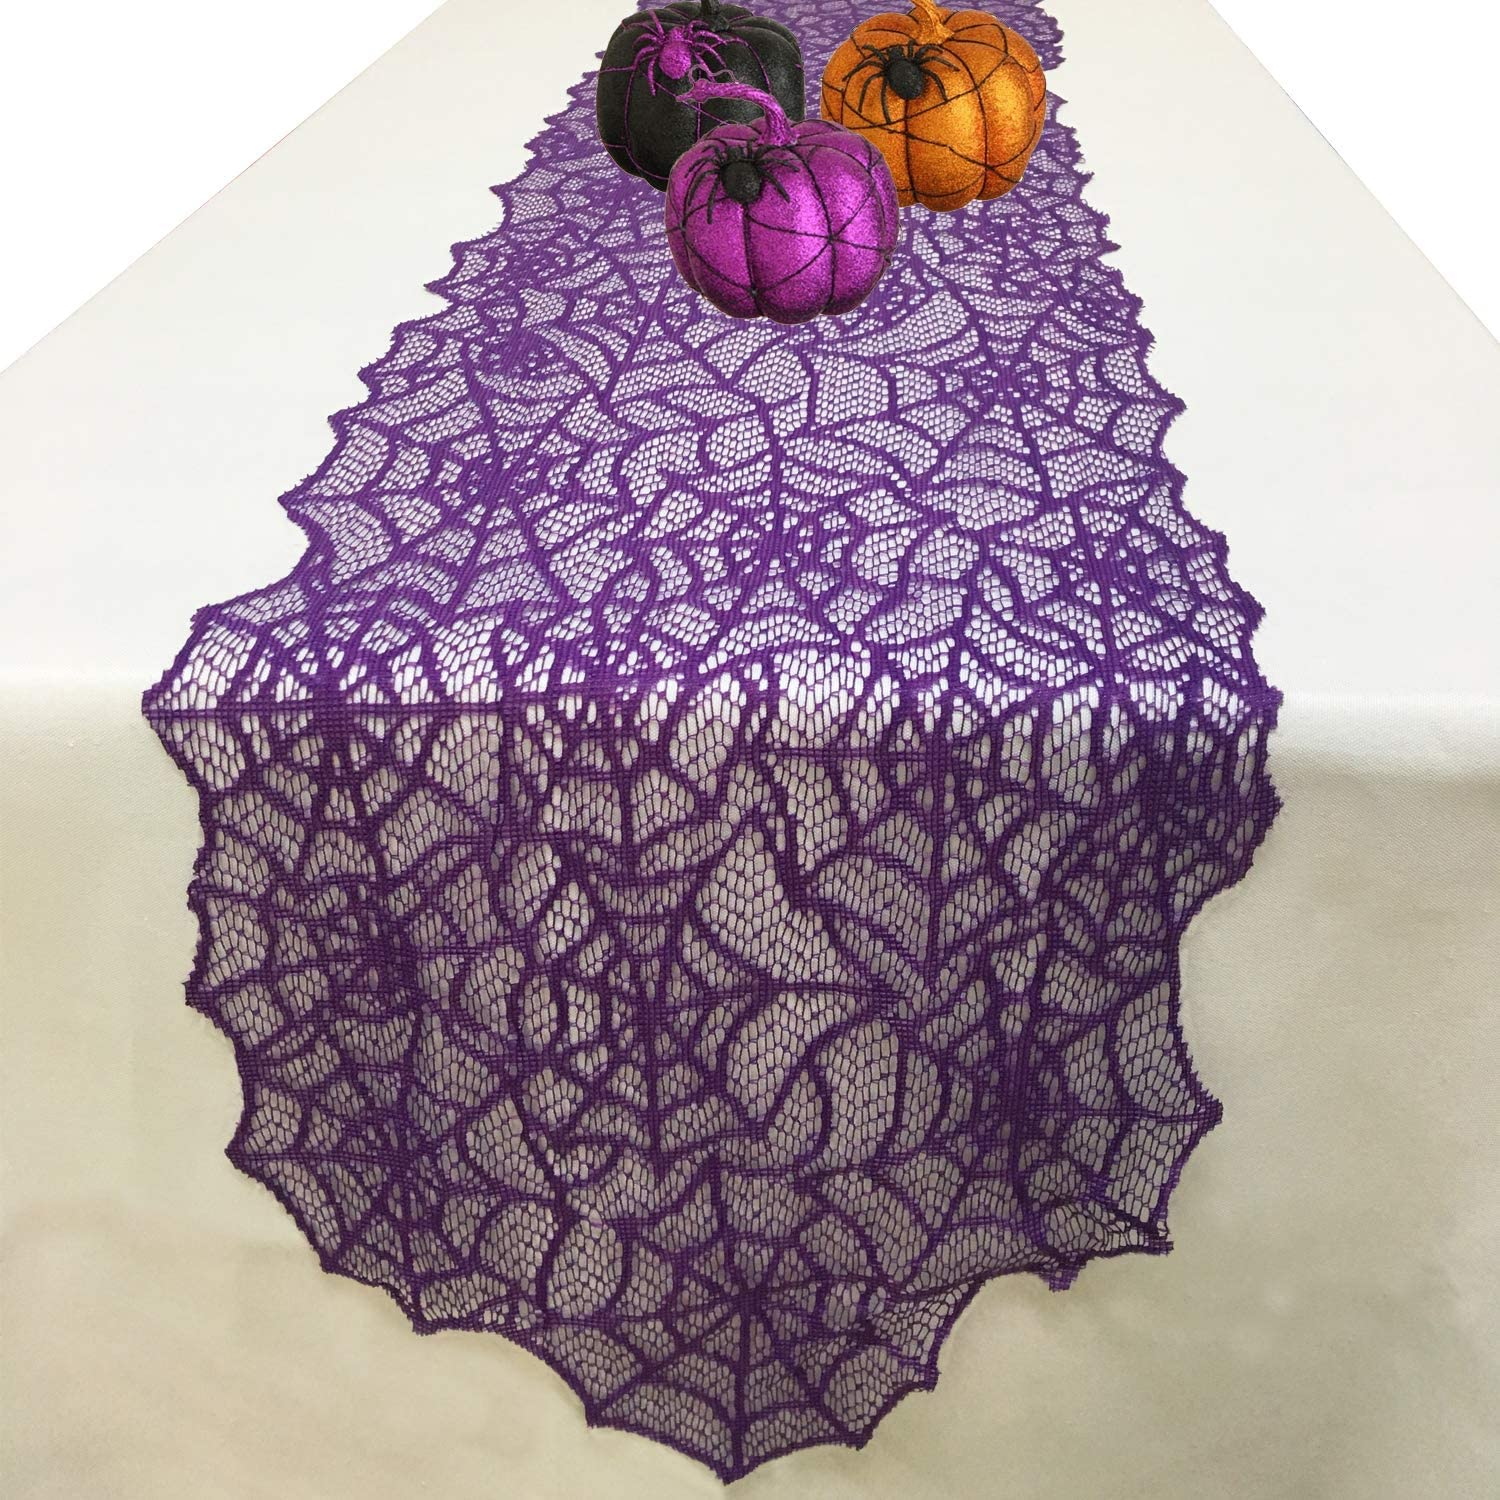 Joysail Halloween Table Runner - Purple Lace Spider Web Table Runner for Halloween Masquerade Scary Movie Nights, 13x72 Inch